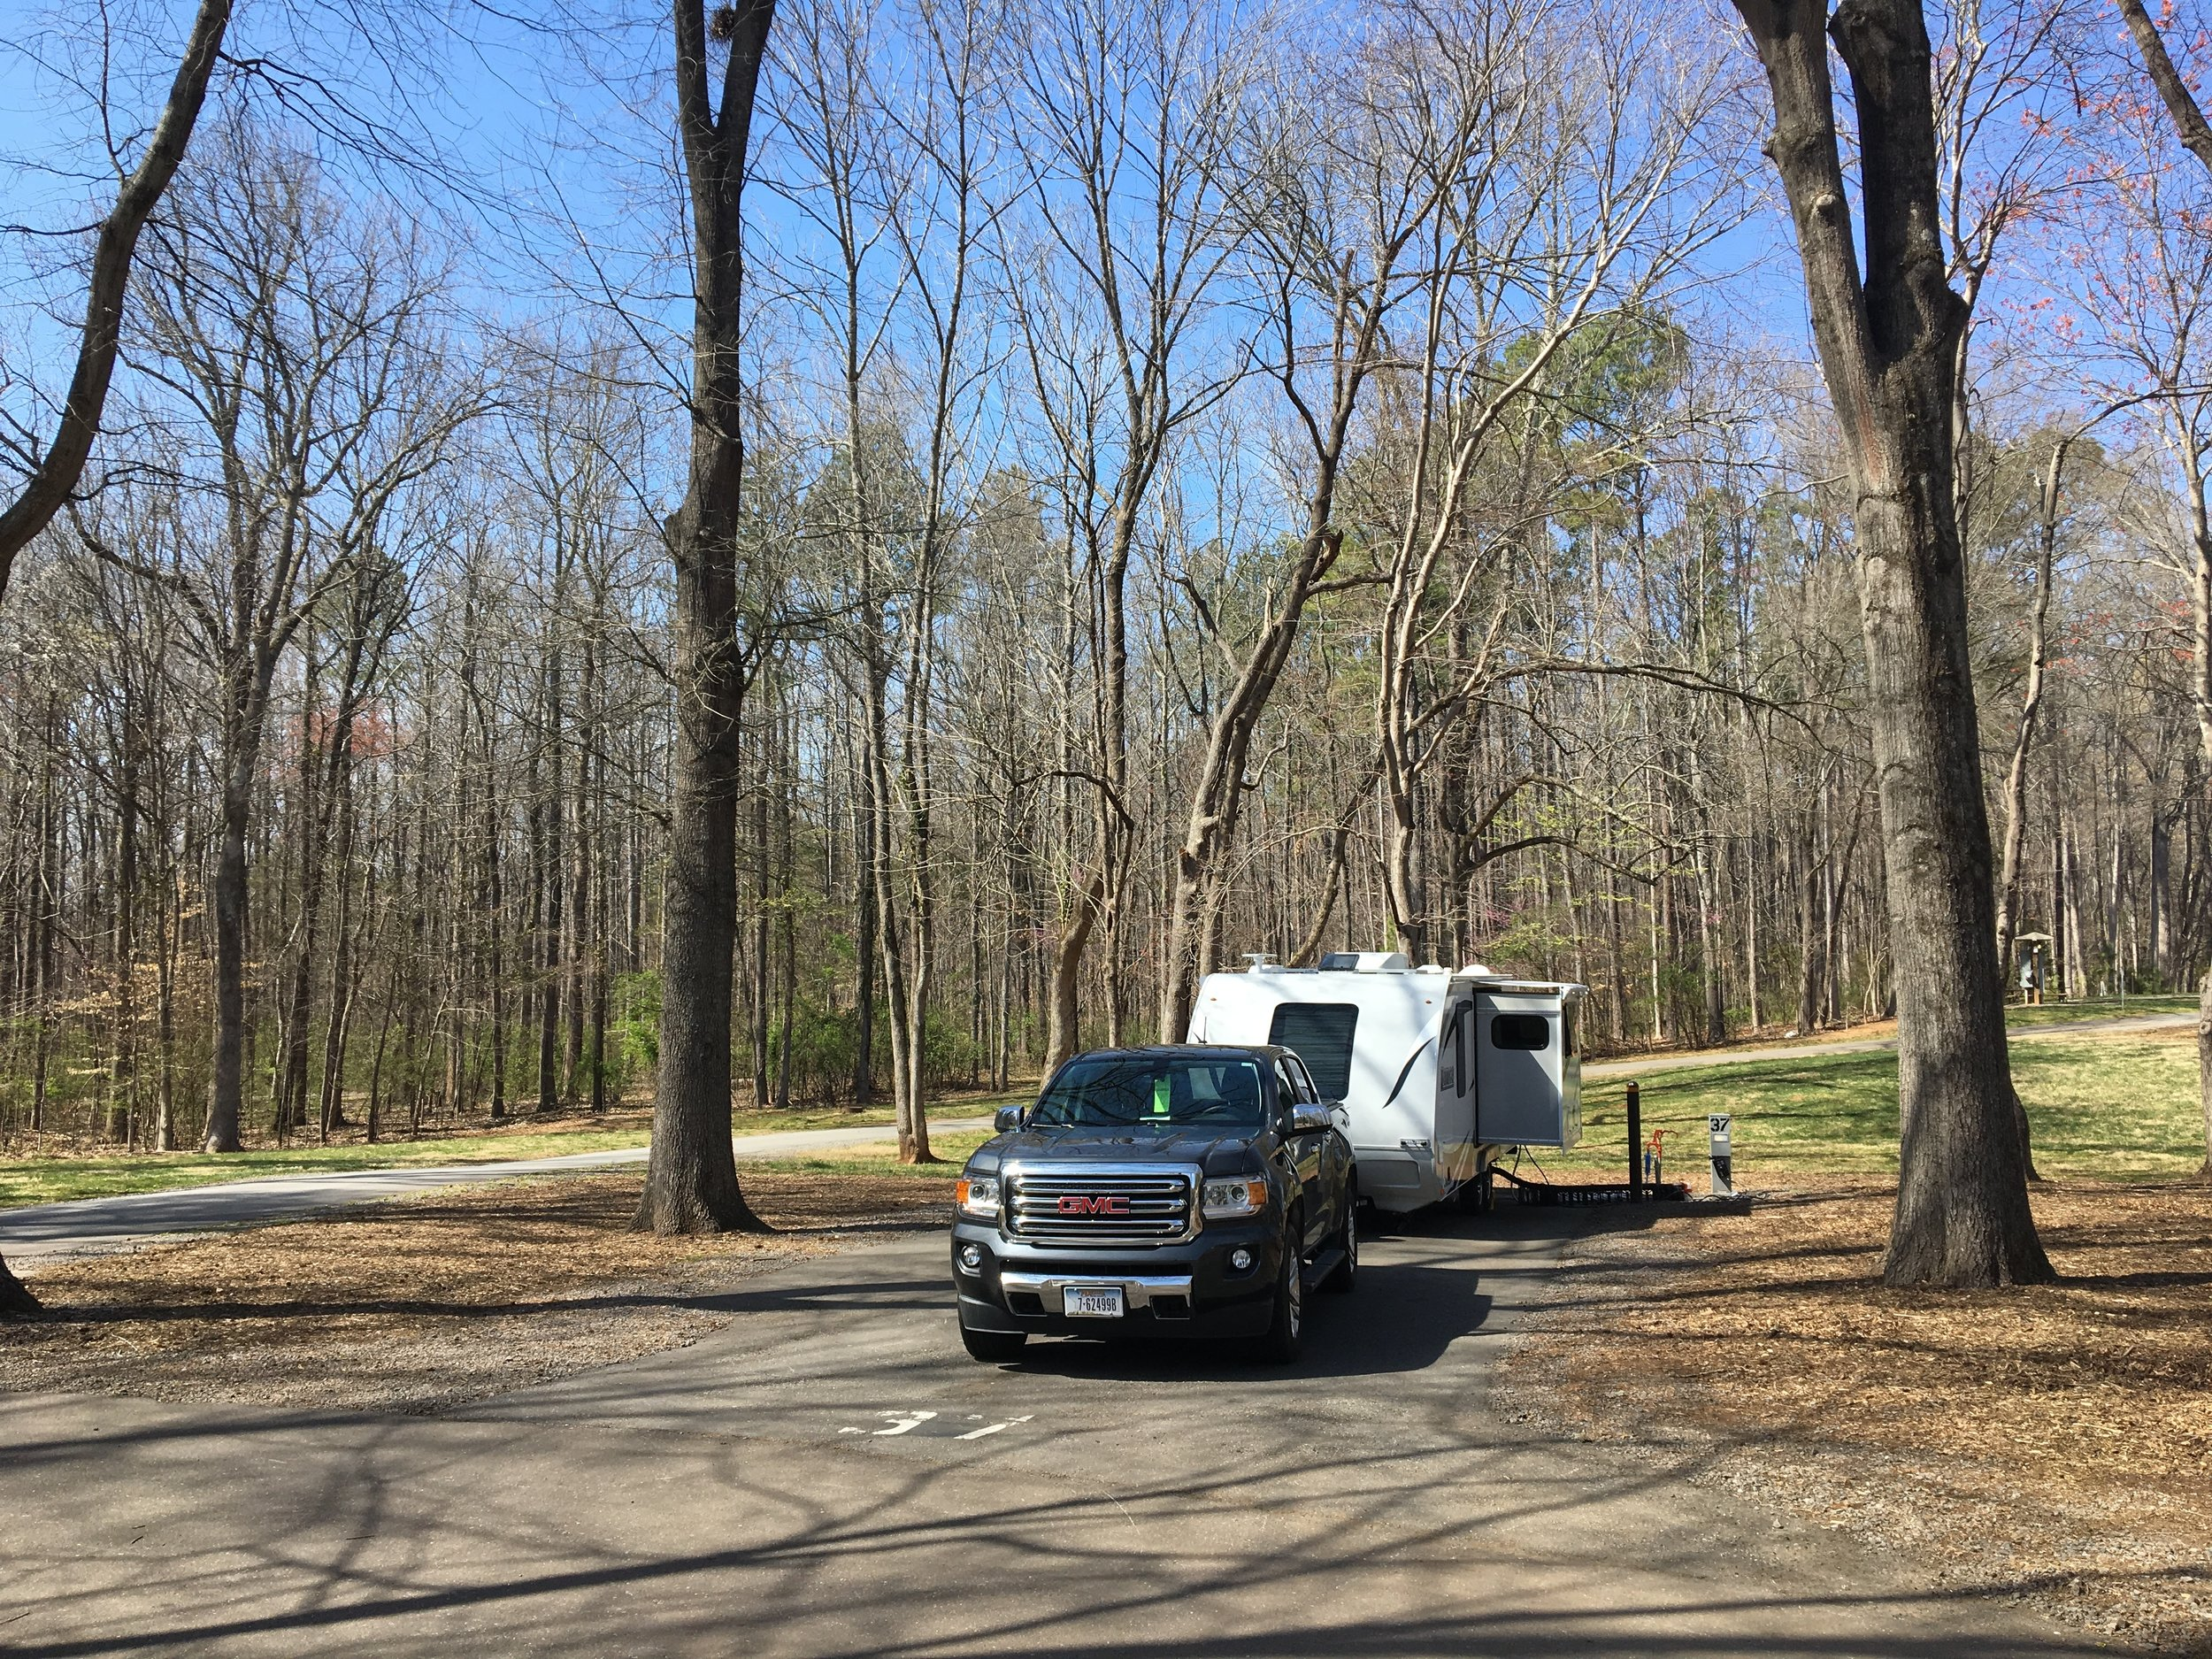 Site #37 at Tanglewood Park